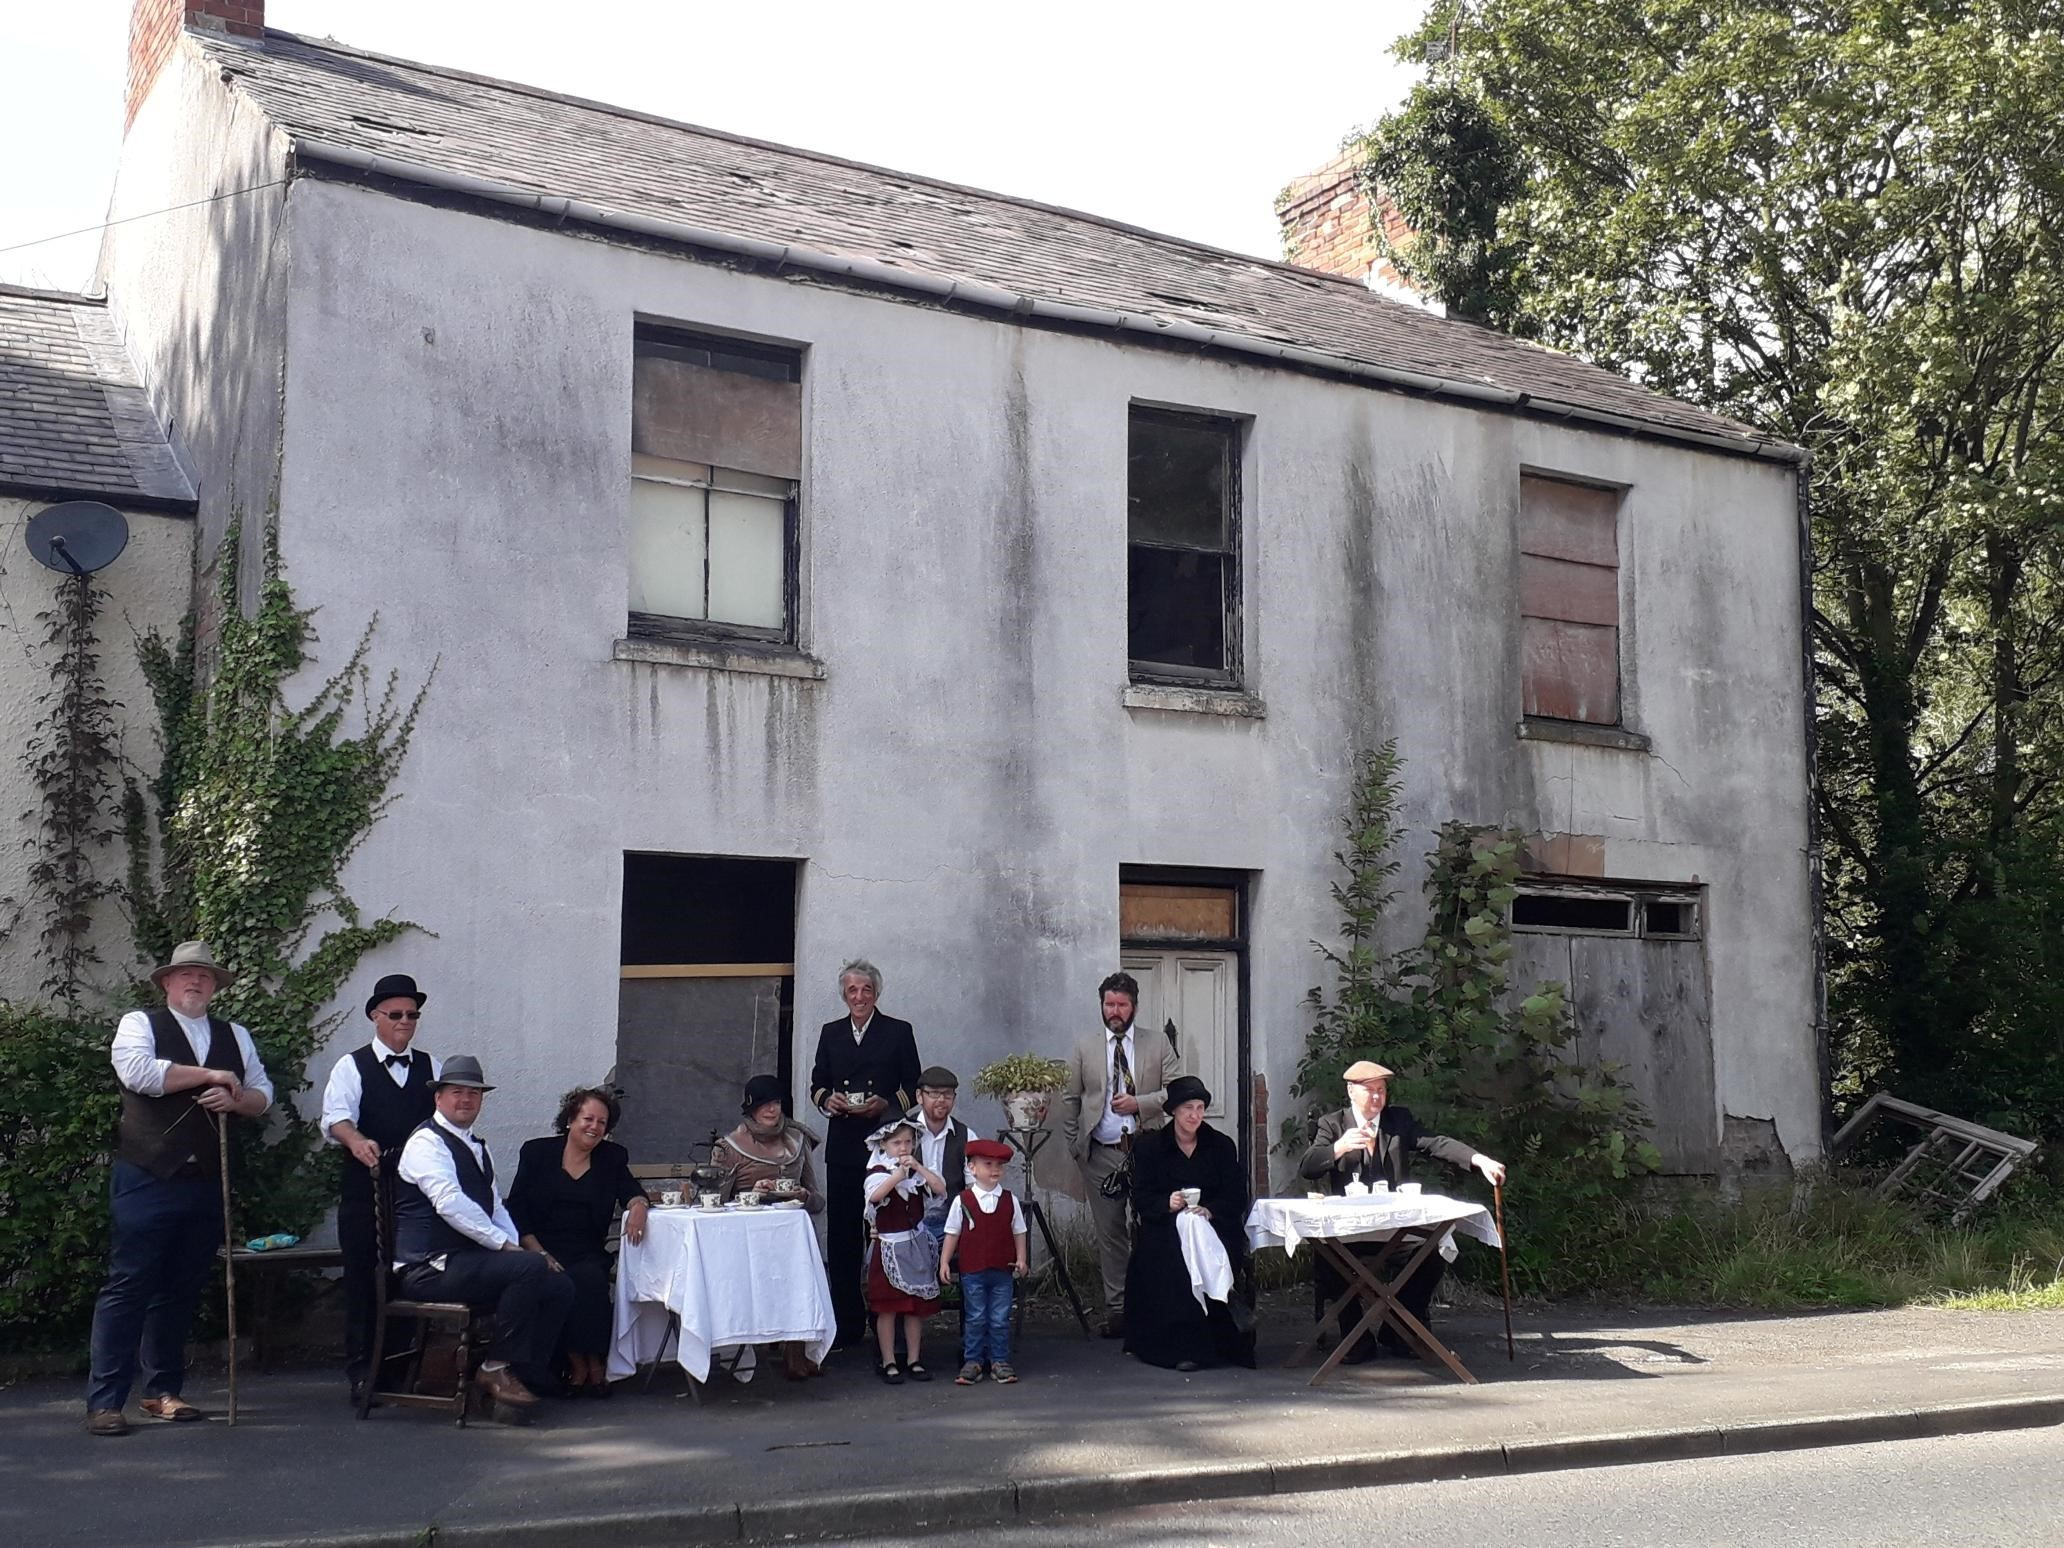 Village residents stage fancy dress protest to save Caergwrle building